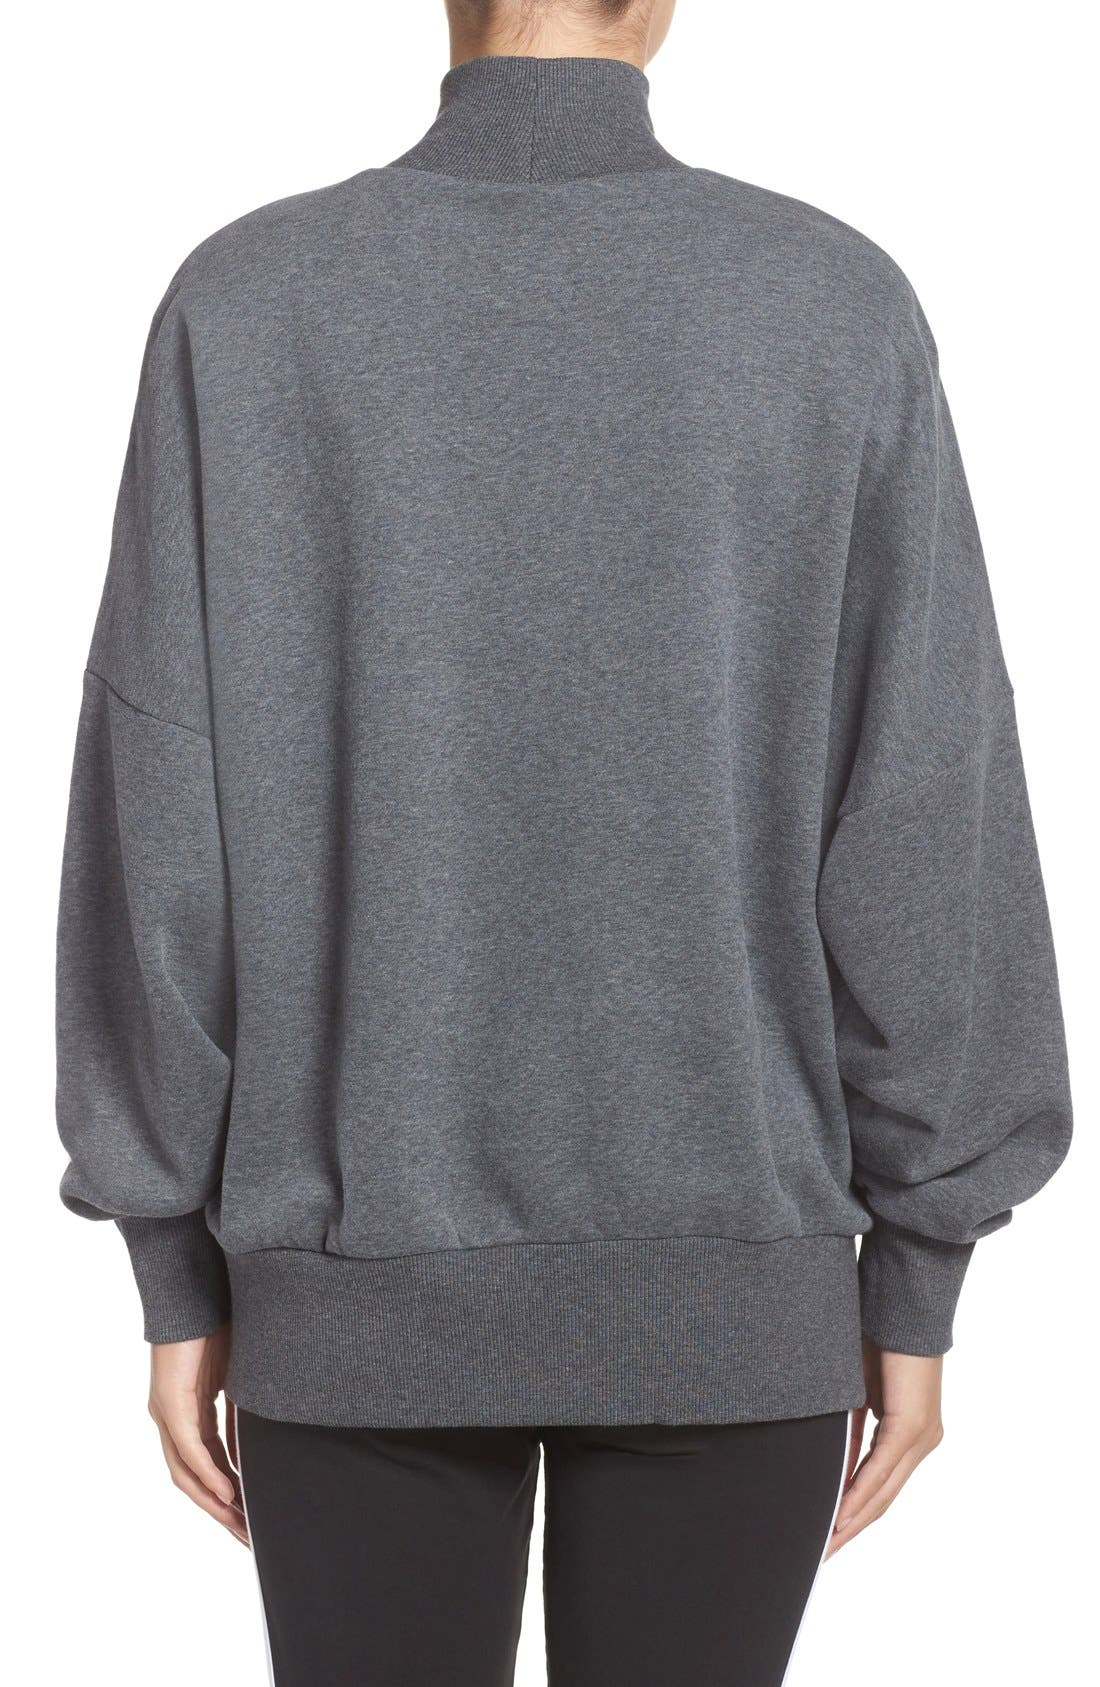 Alternate Image 2  - adidas Originals Mock Neck Sweatshirt